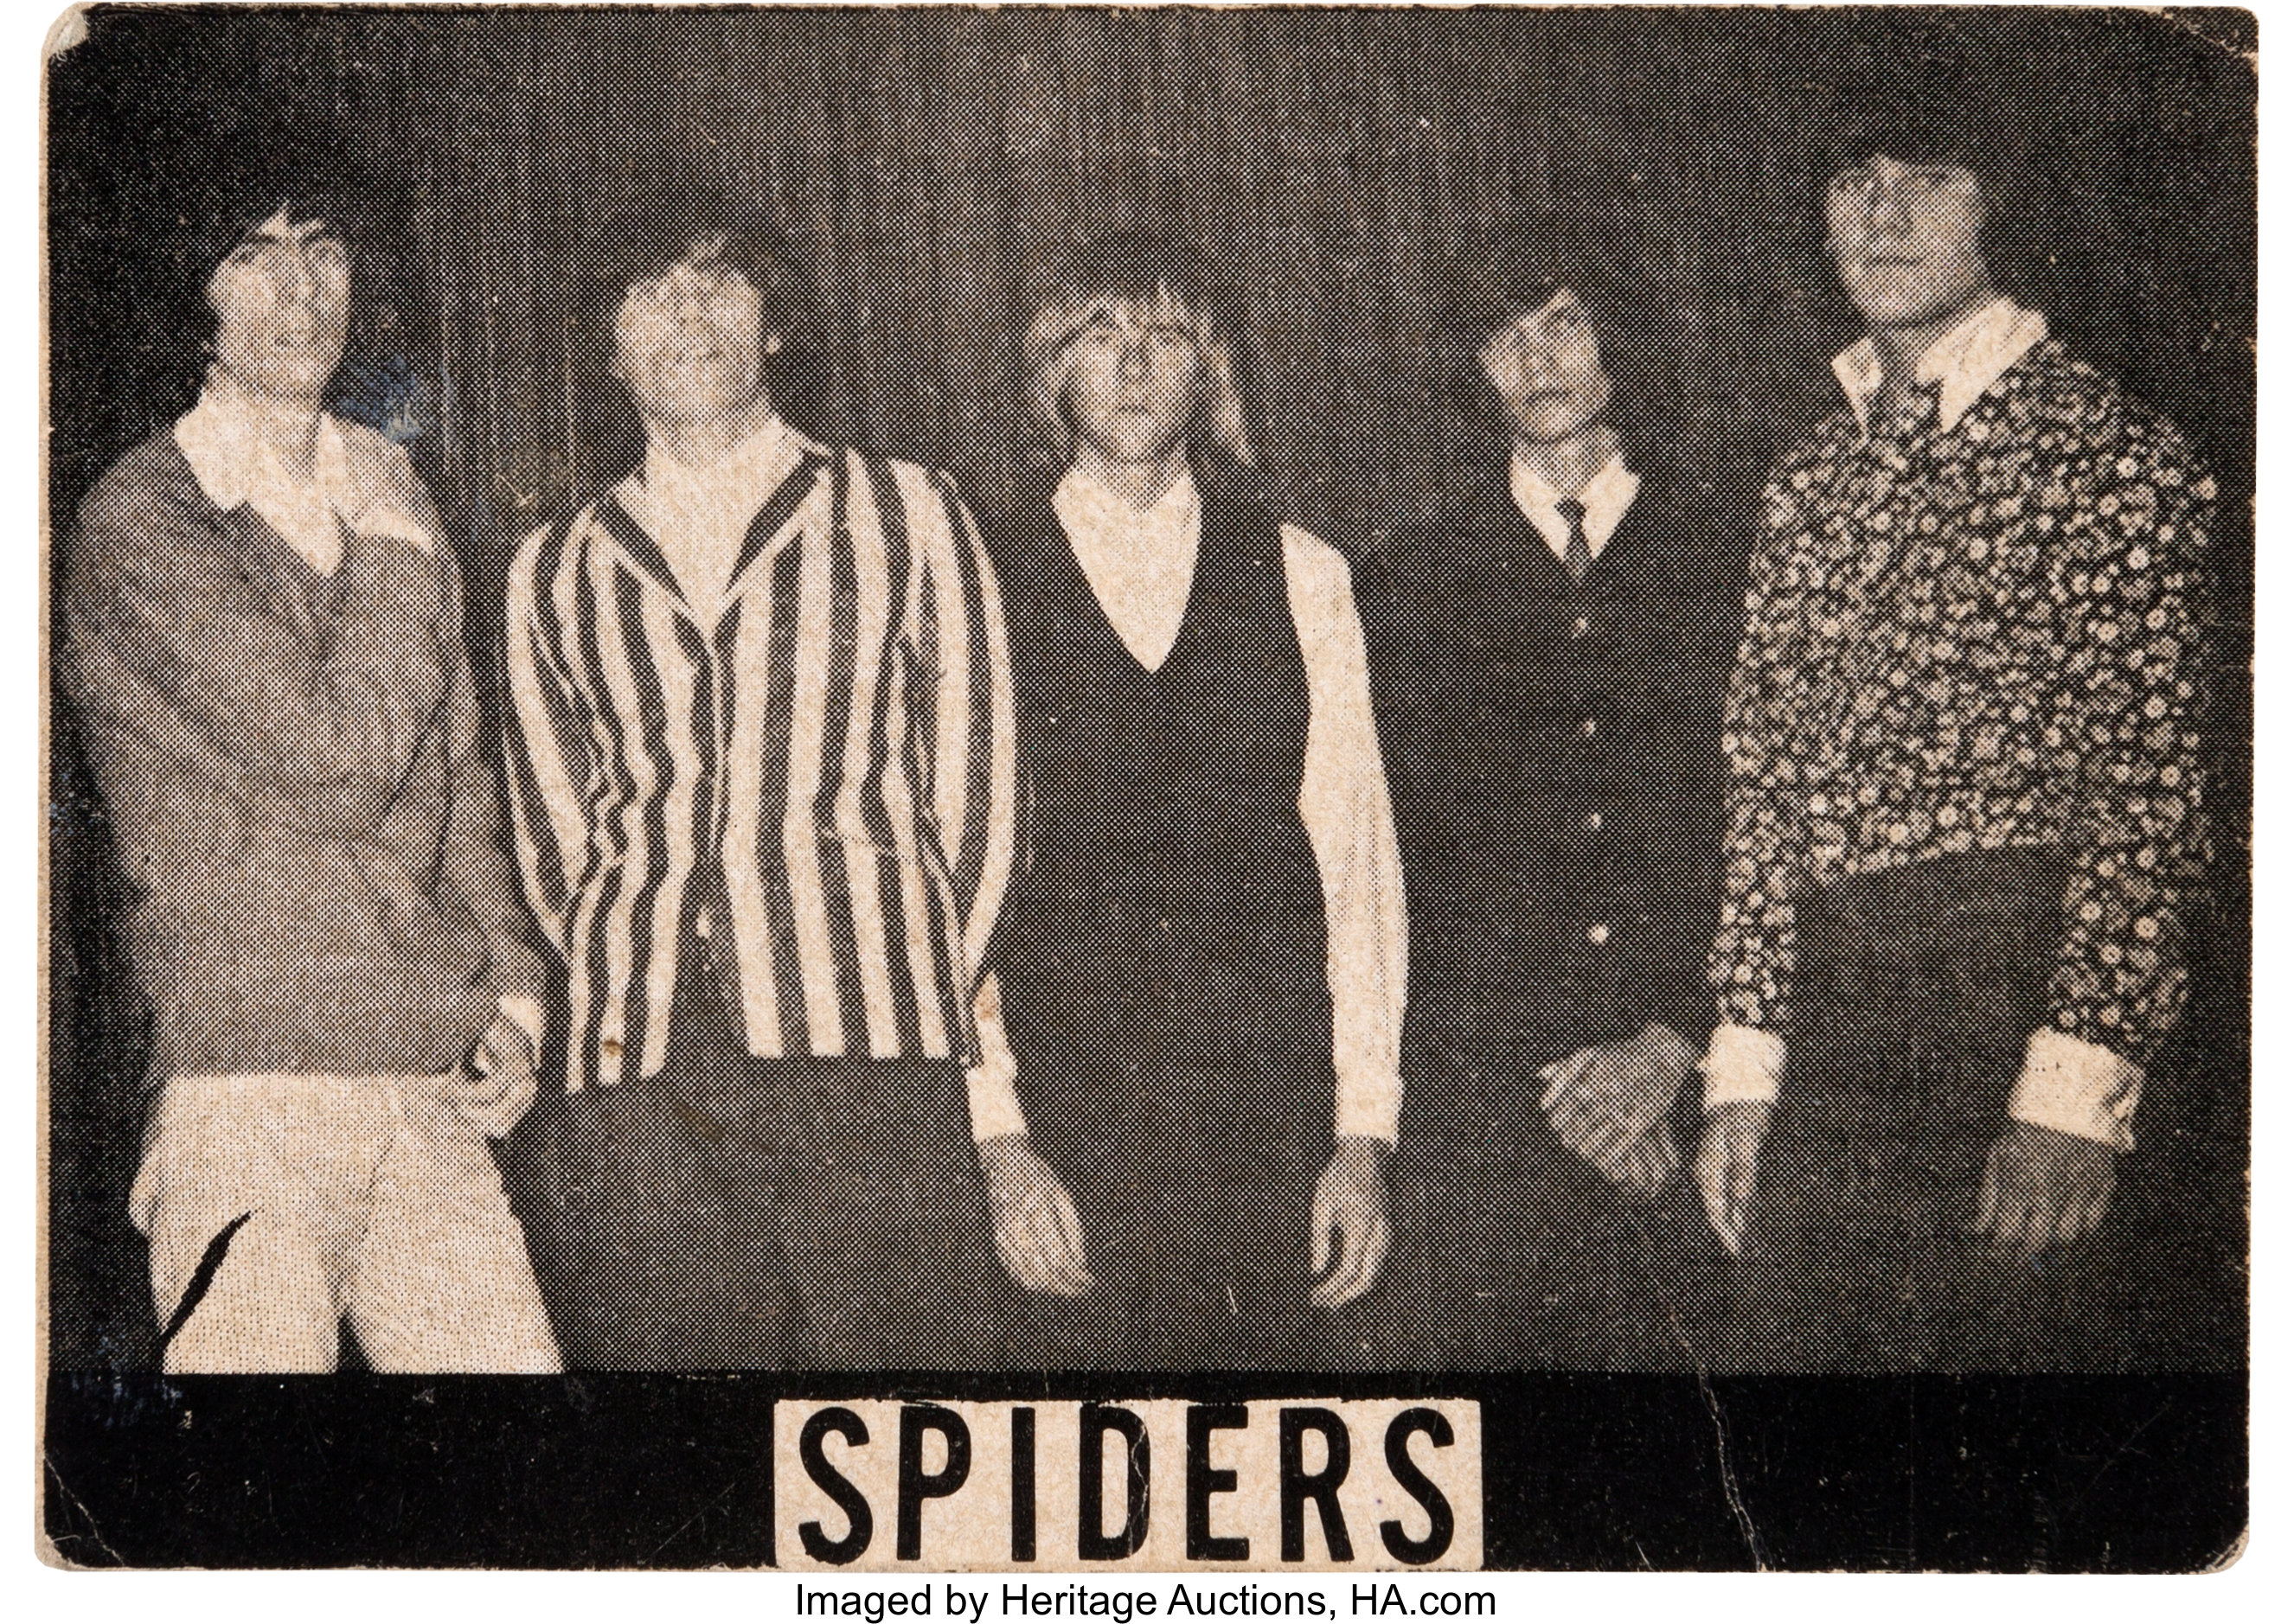 Alice Cooper as the Spiders Original Photo Business Card (1966). | Lot  #46557 | Heritage Auctions